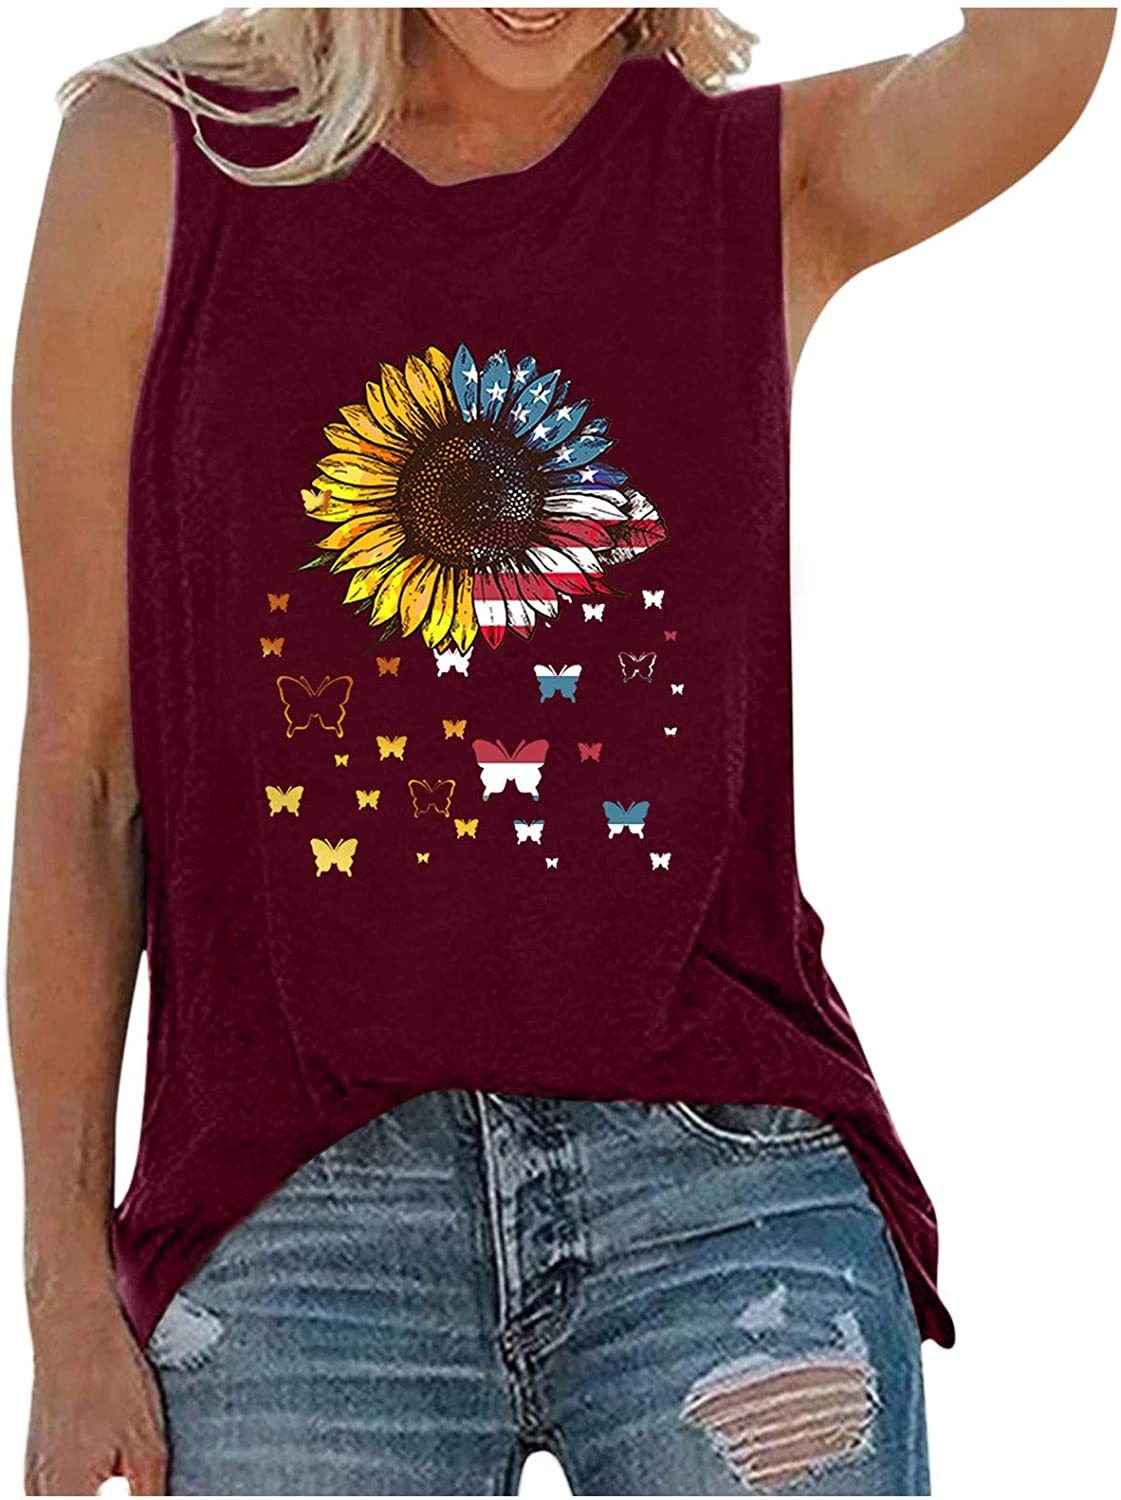 Summer Tank Tops for Women,Women's Sunflower Cute Printed Tank Tops Colorful Sleeveless T-Shirt Funny Graphic Tee Tops